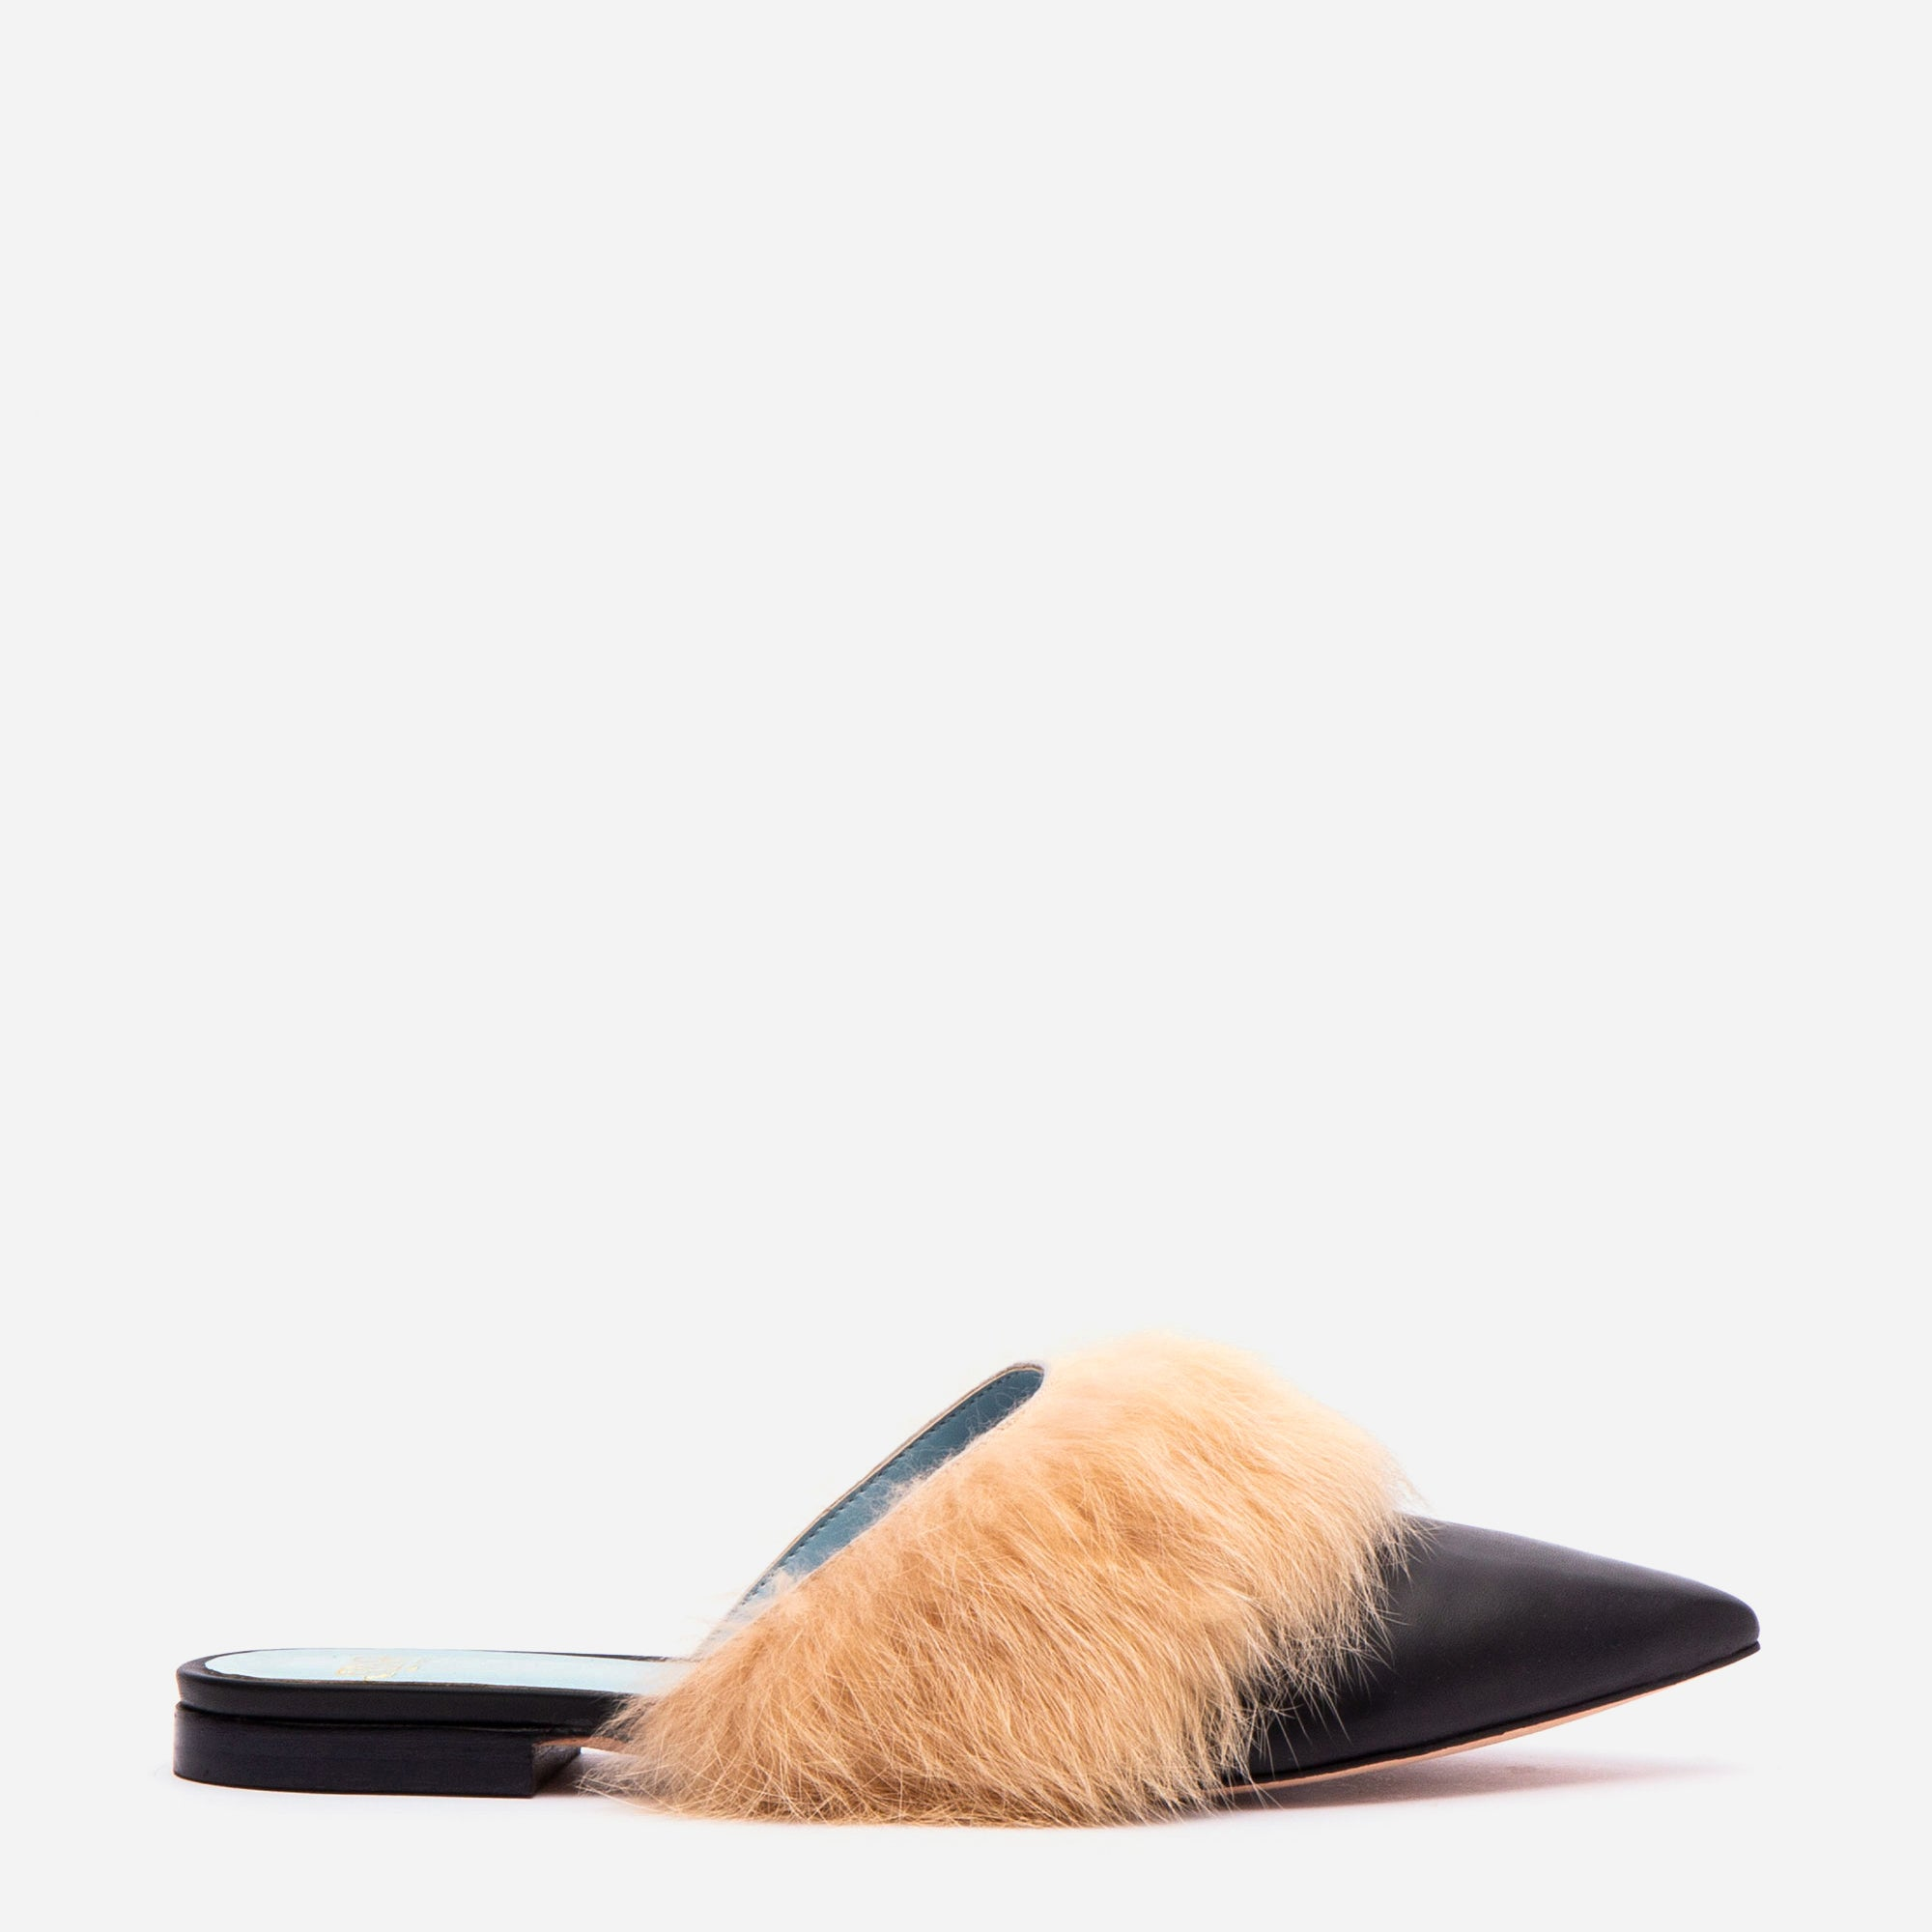 Paloma Calf Leather Fur Cuff Mule Black Camel - Frances Valentine